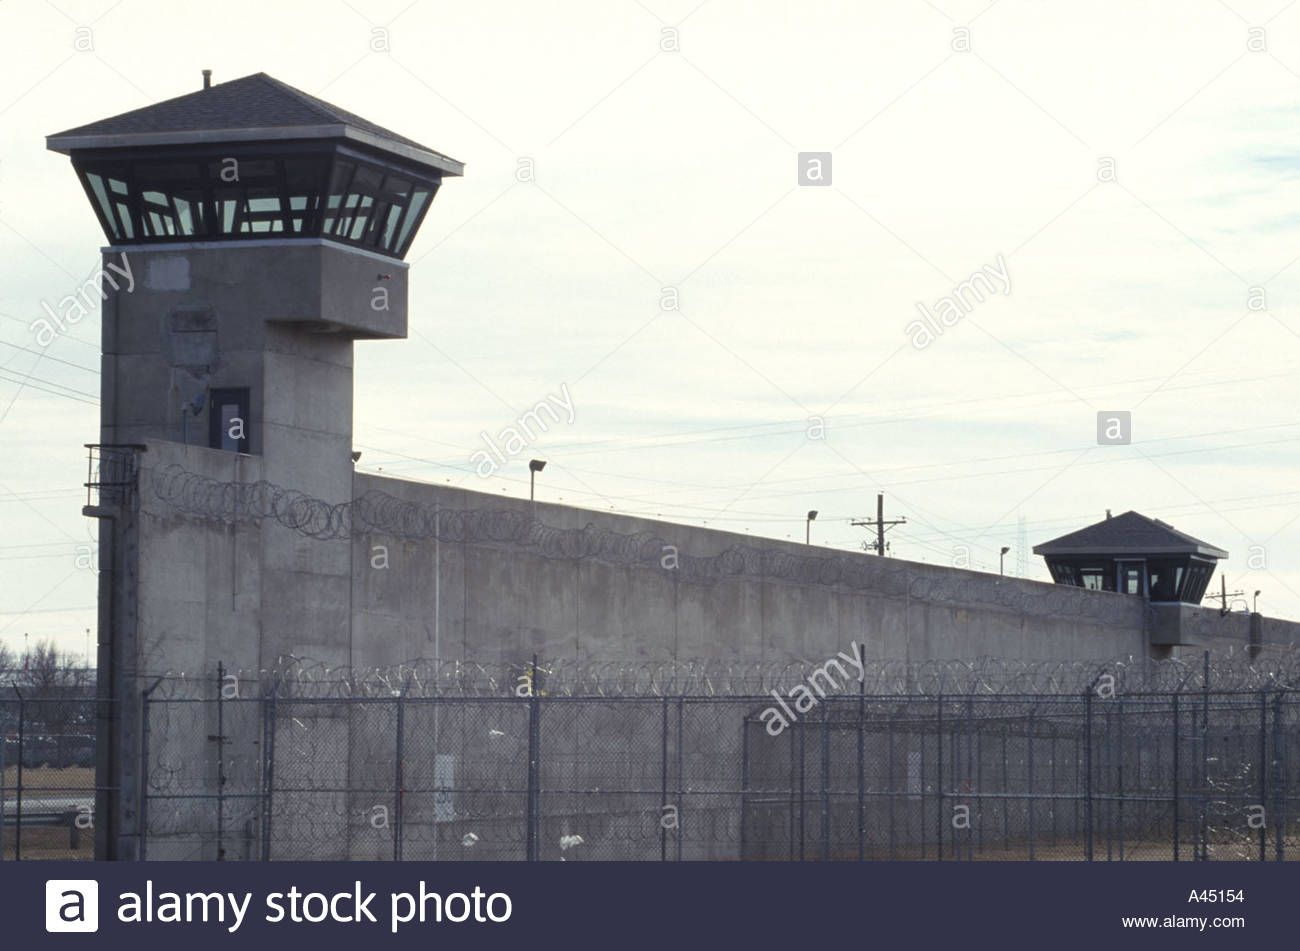 Download This Stock Image Prison Tower And Wall The Towers Are